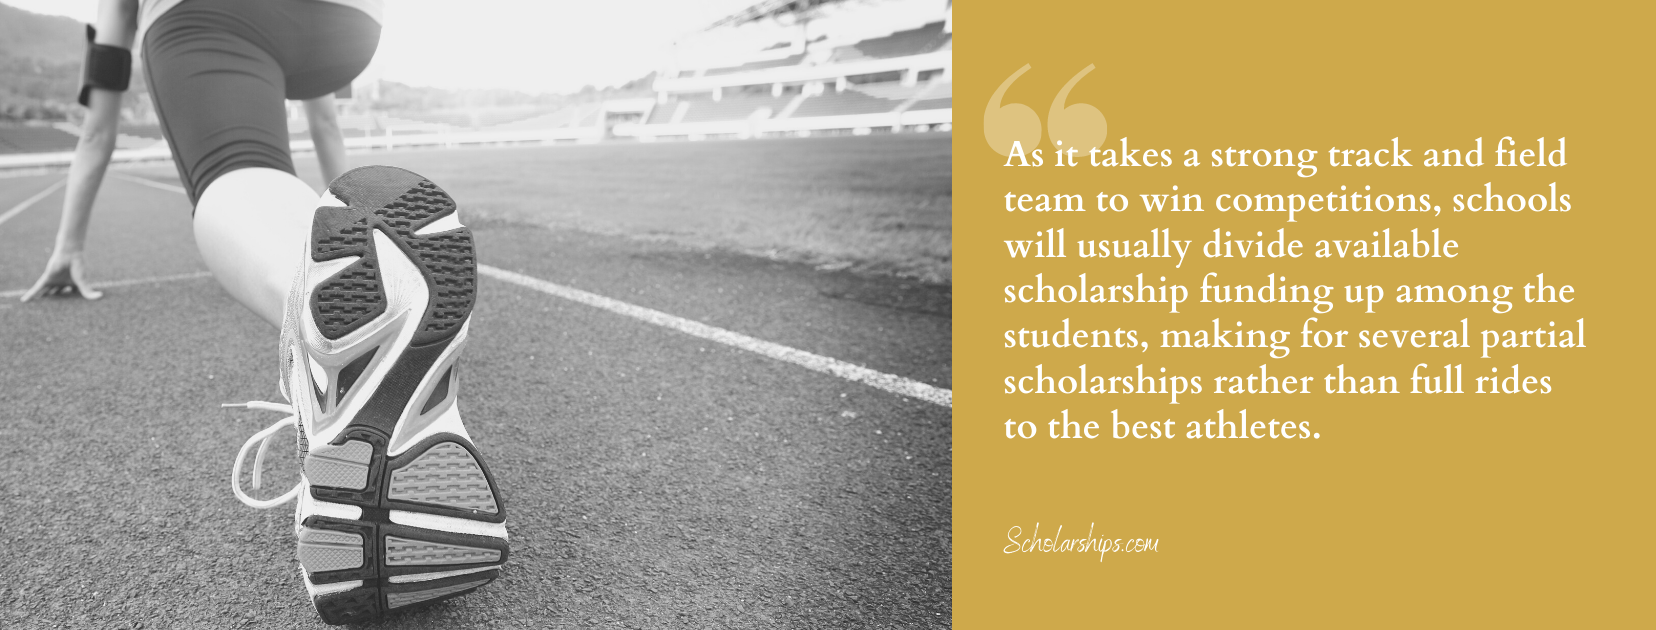 Women's Track and Field Scholarship-fact 5